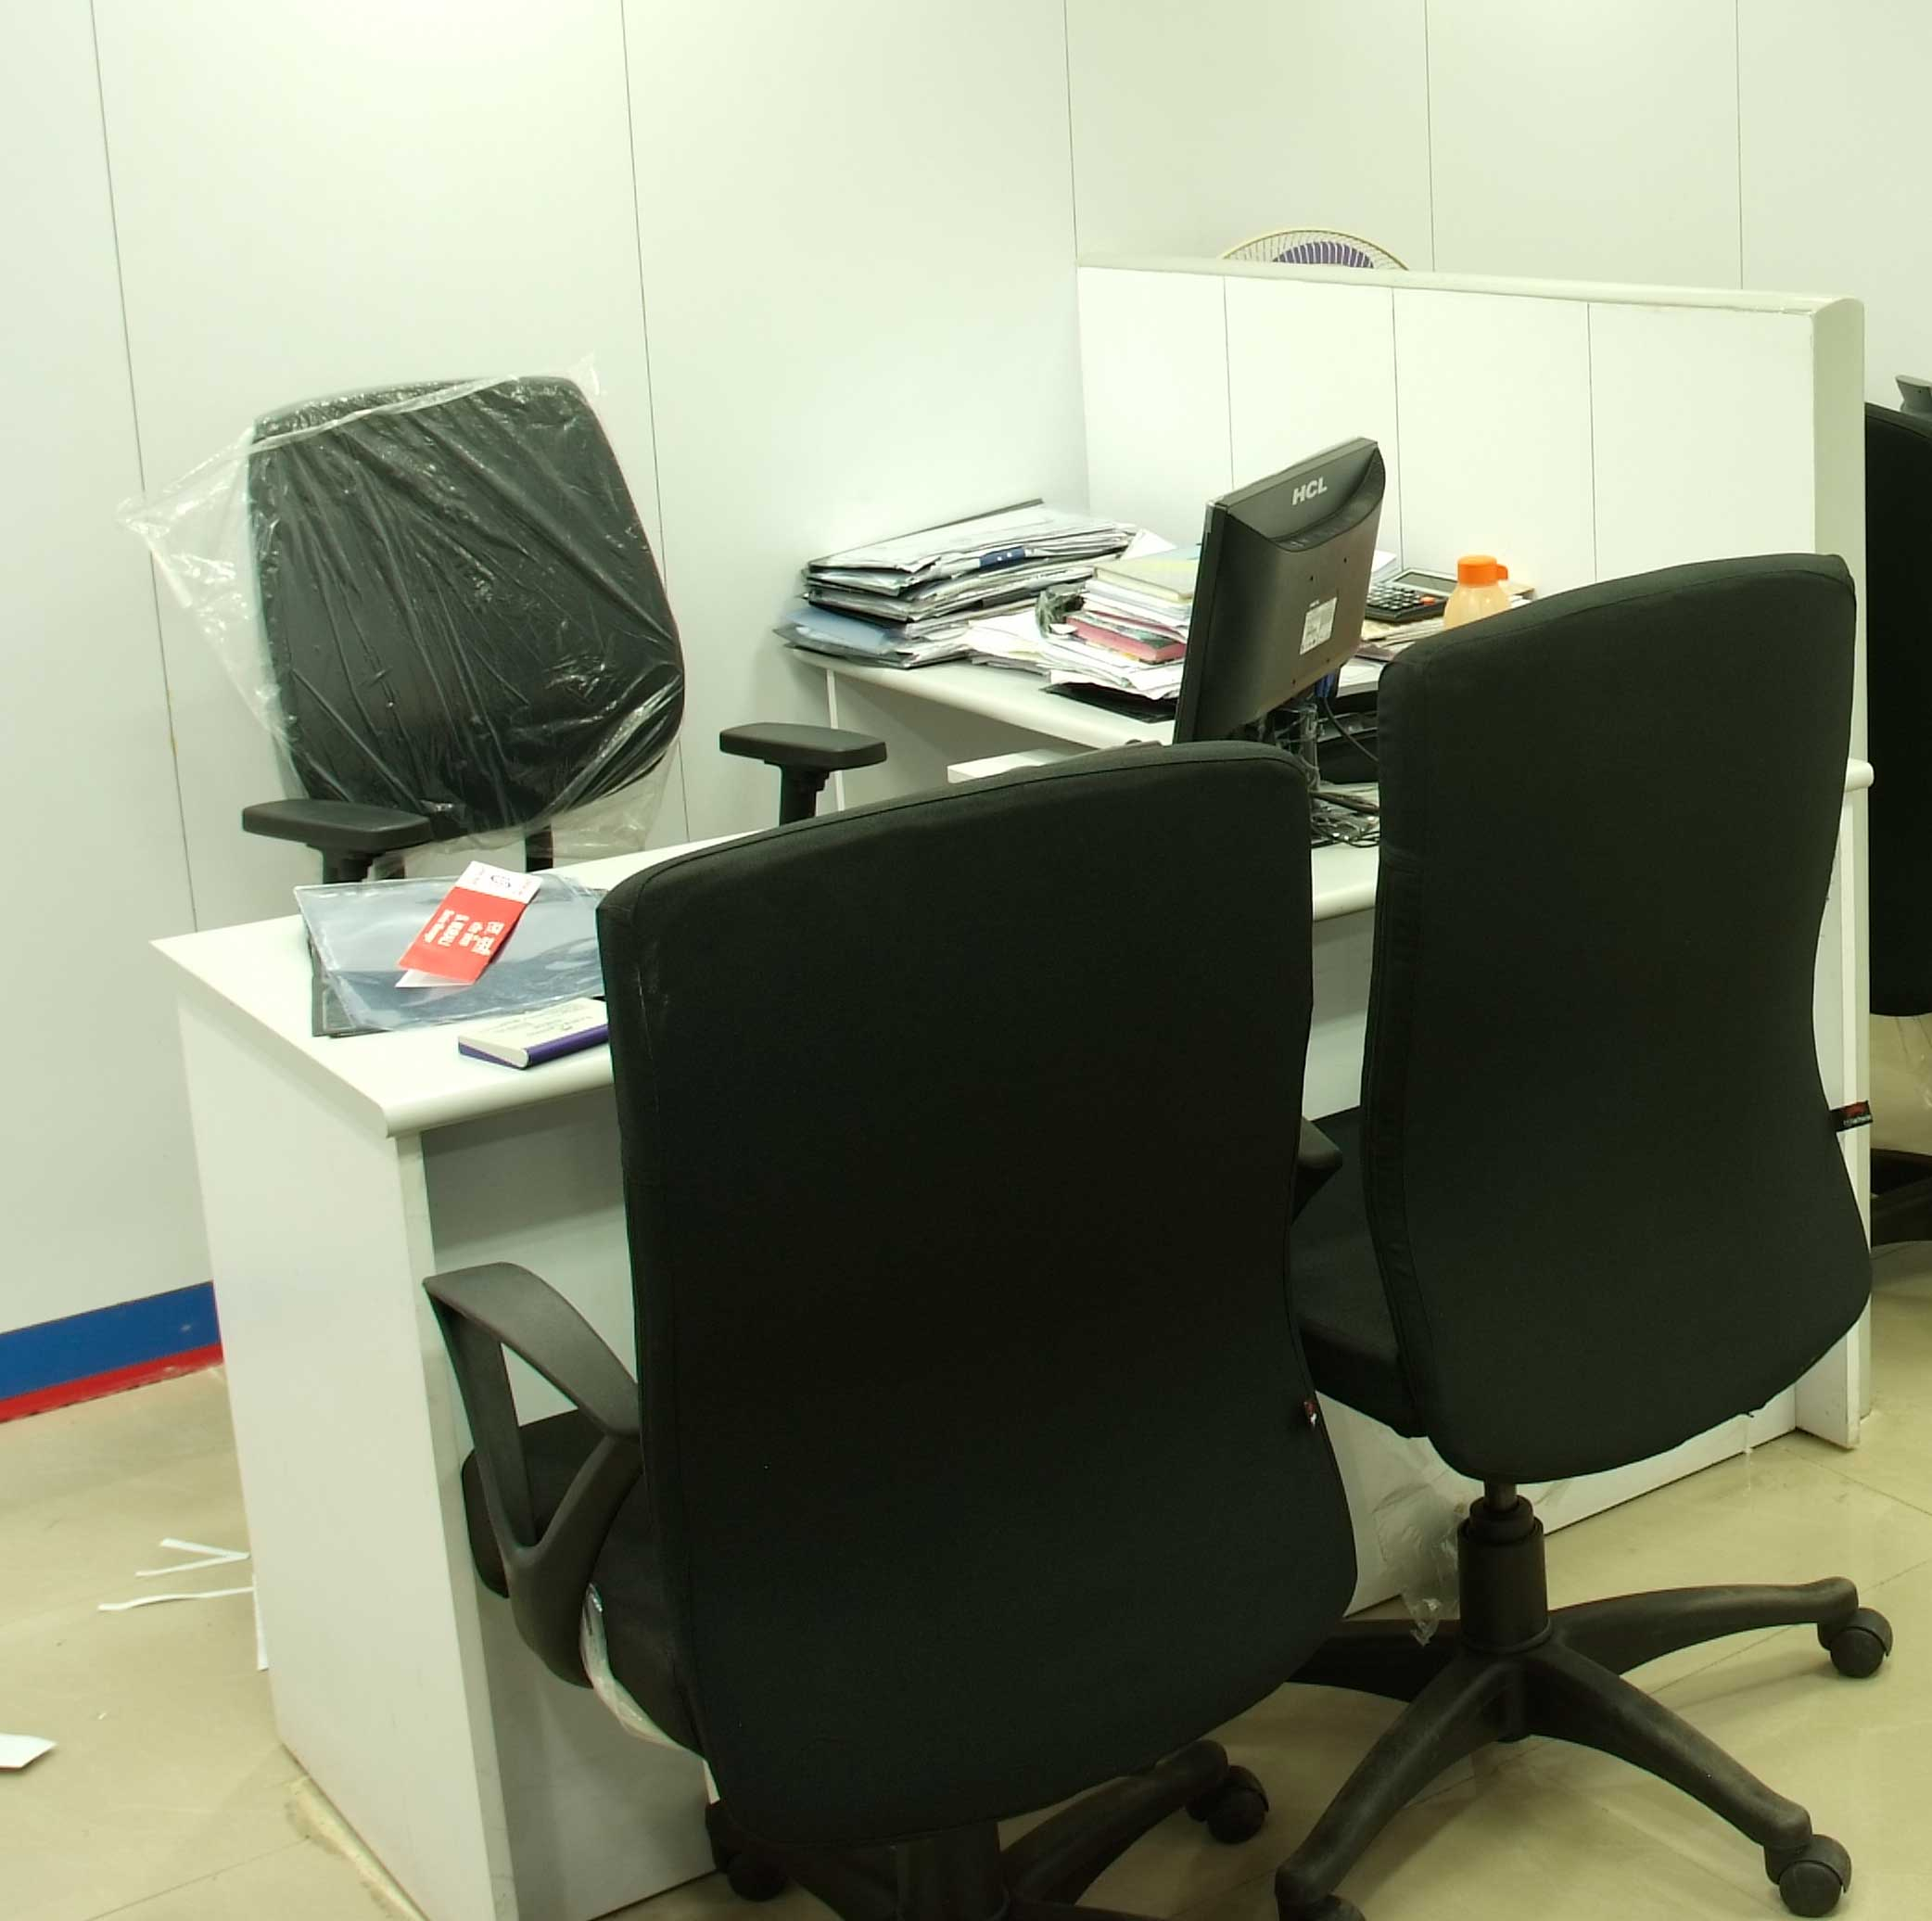 revolving chair manufacturer in nagpur aluminum bistro table and chairs office furniture manufacturers suppliers infodirectory b2b